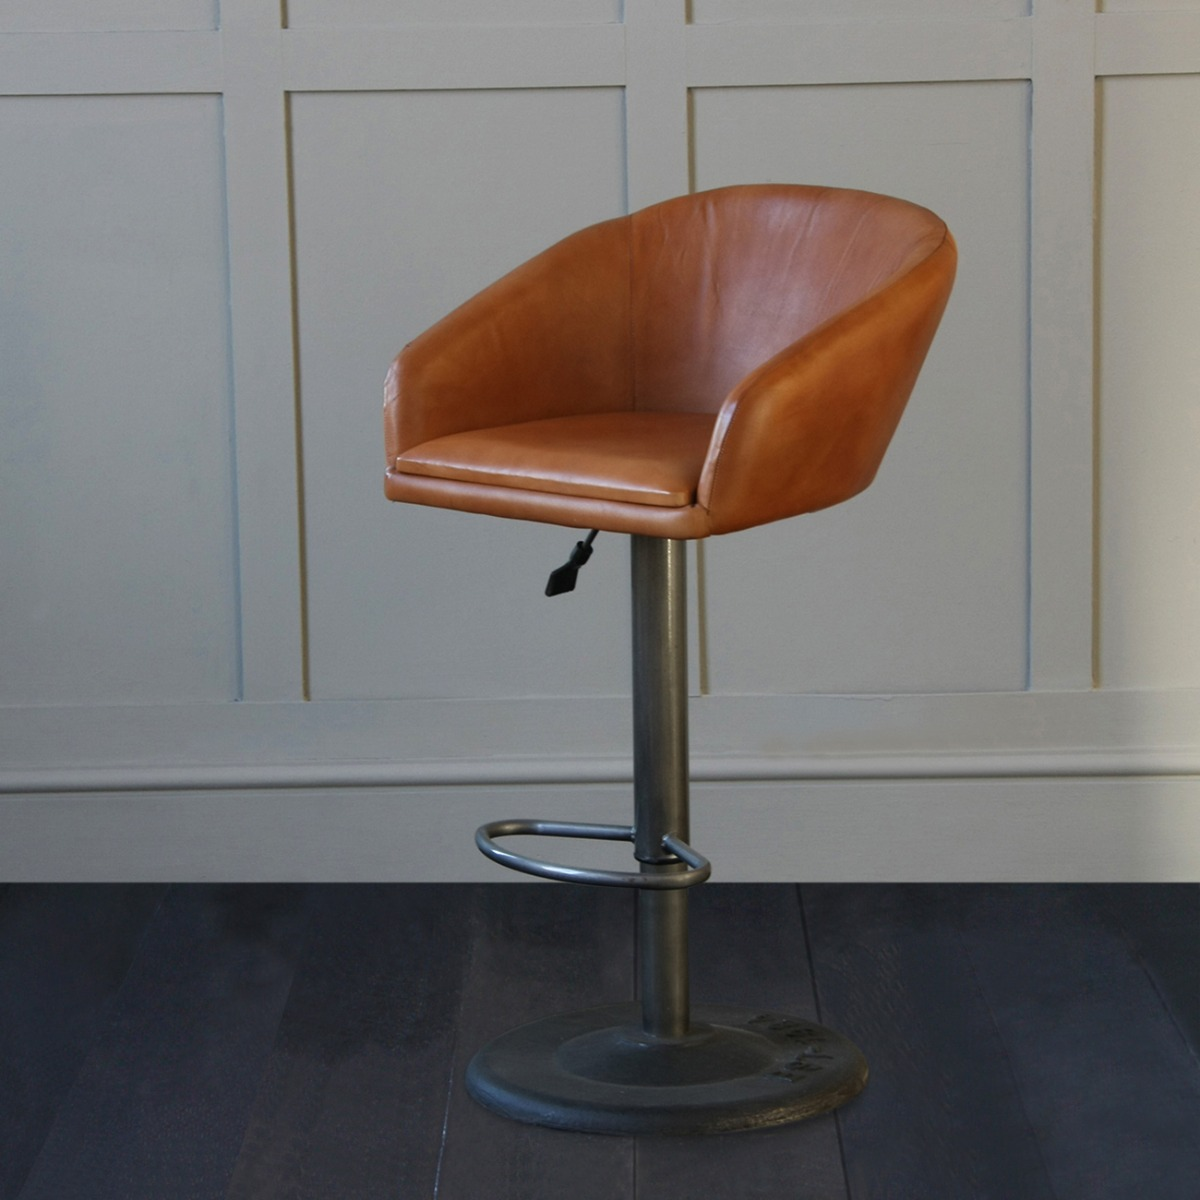 Our Club Bar Stools are great options if you're in need of a rock solid base for your bar dwellers